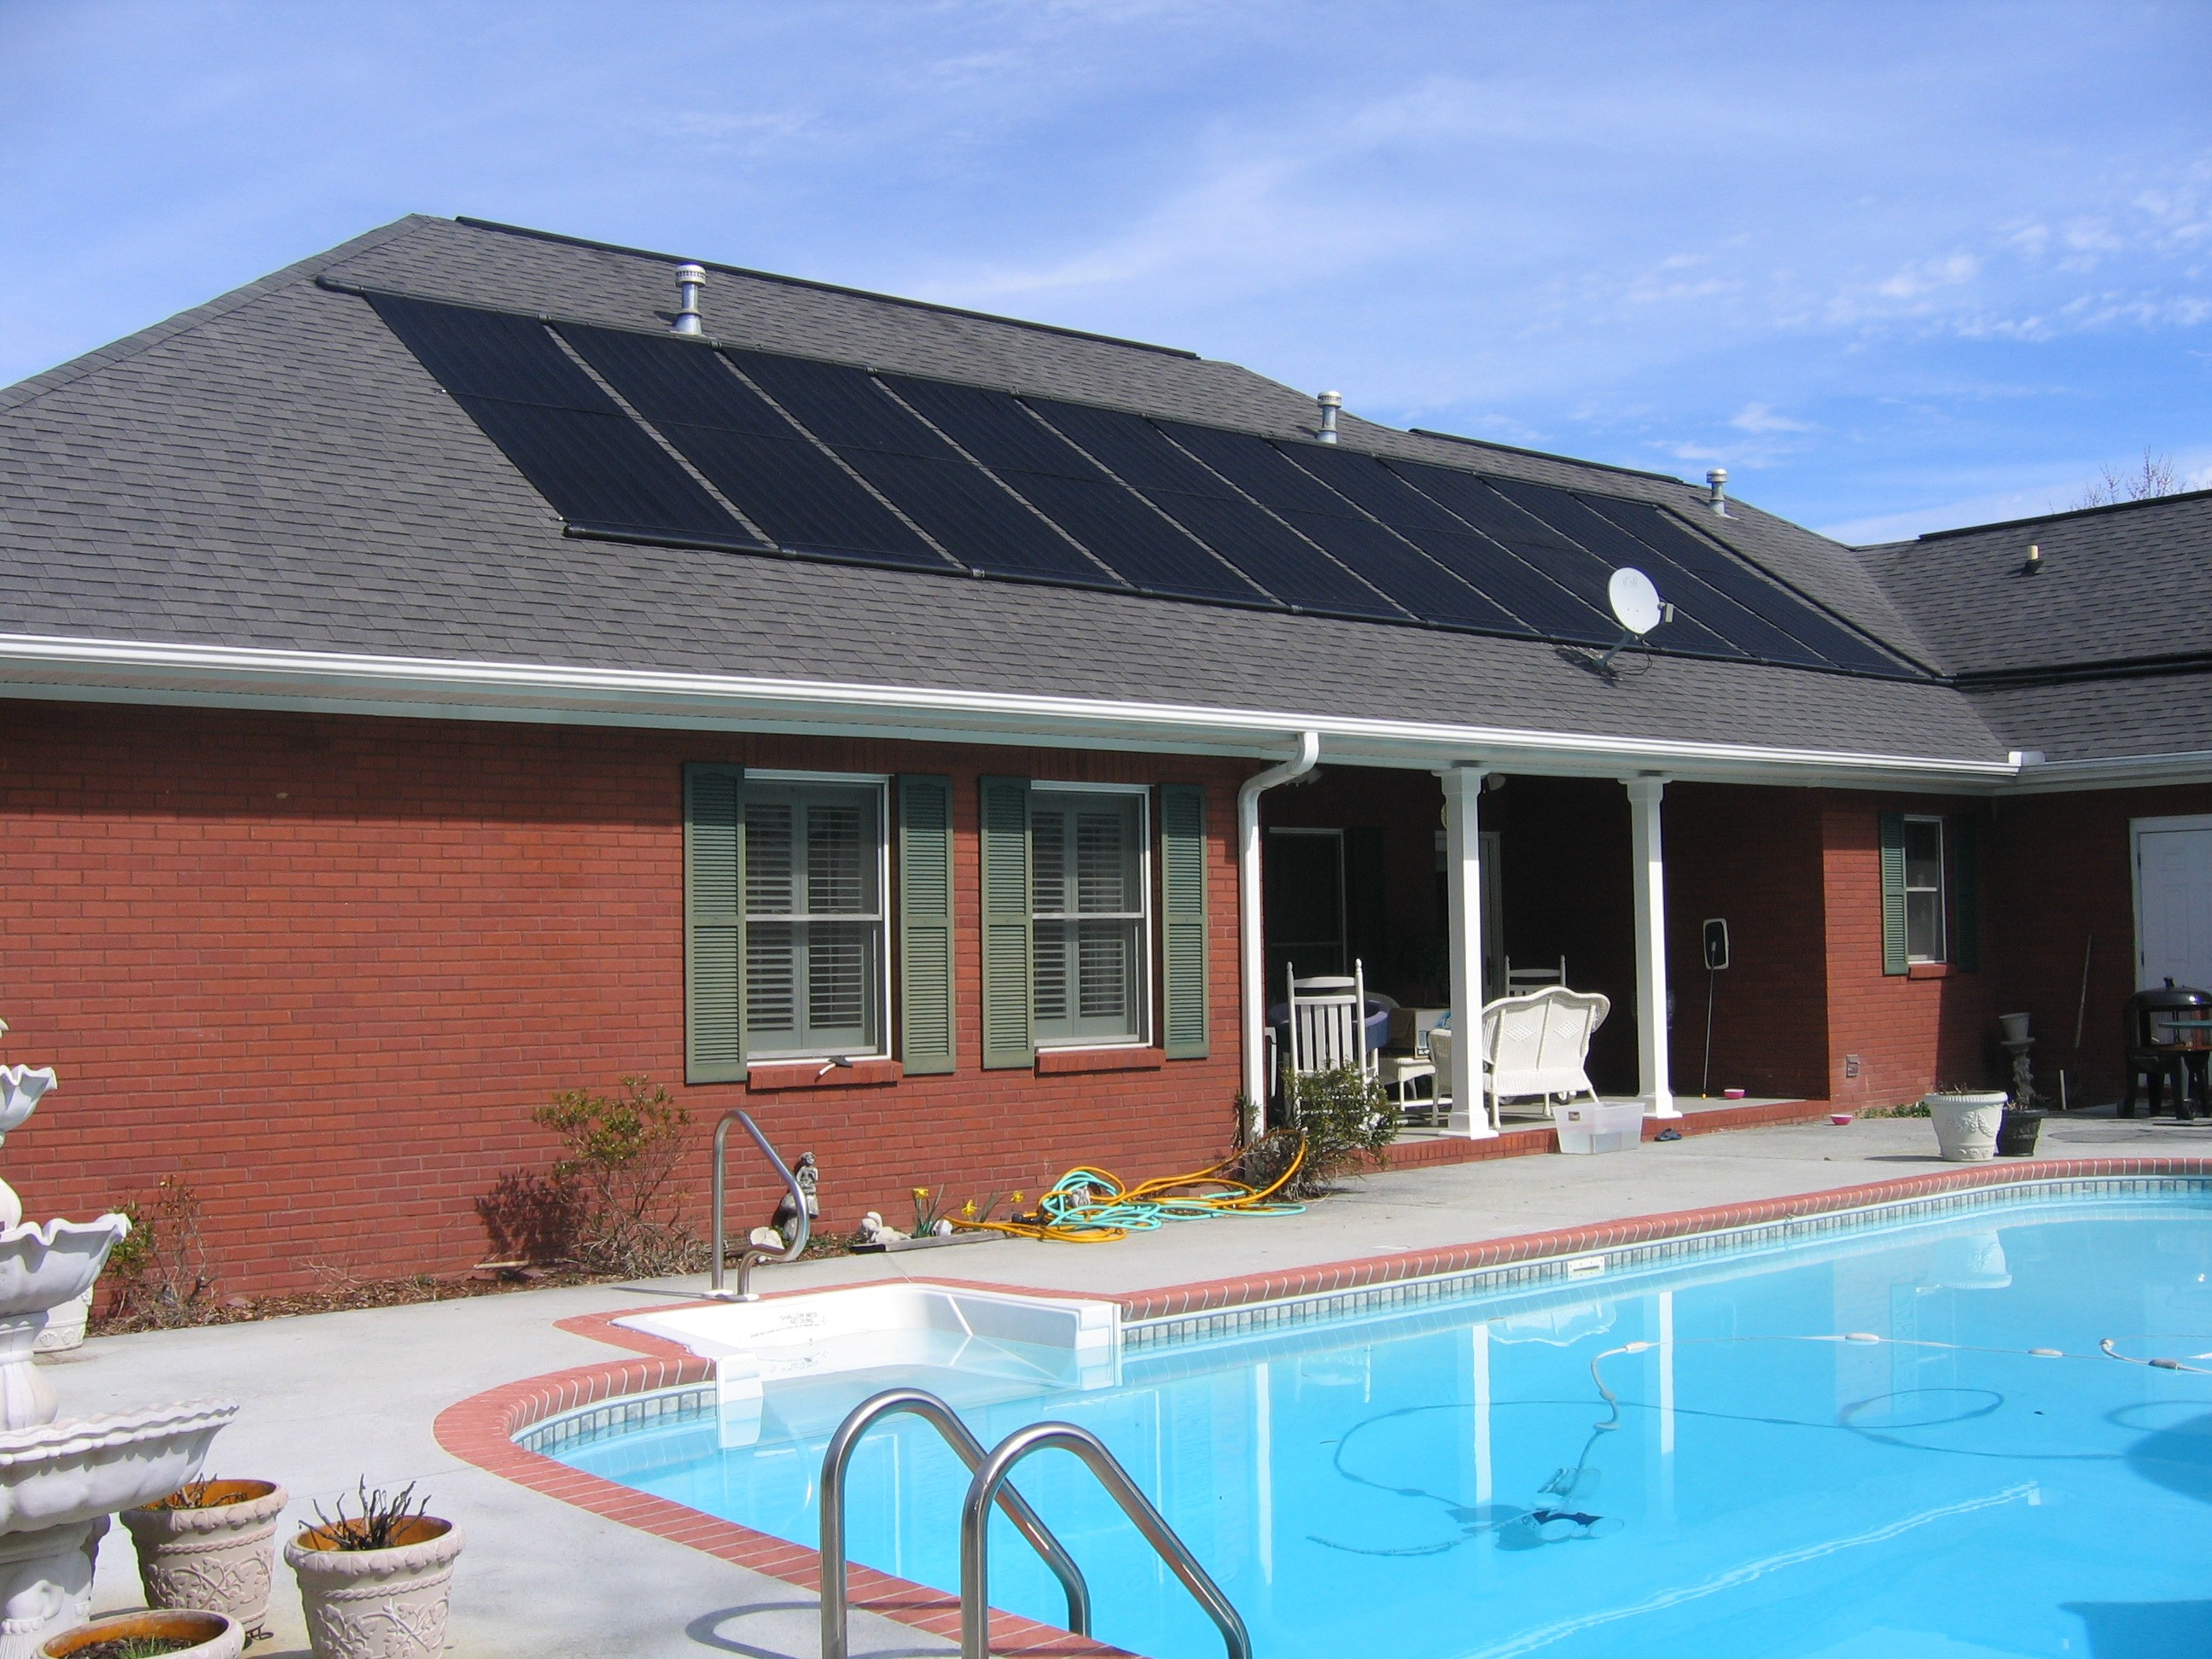 Solar Pool Heaters For Inground Pools